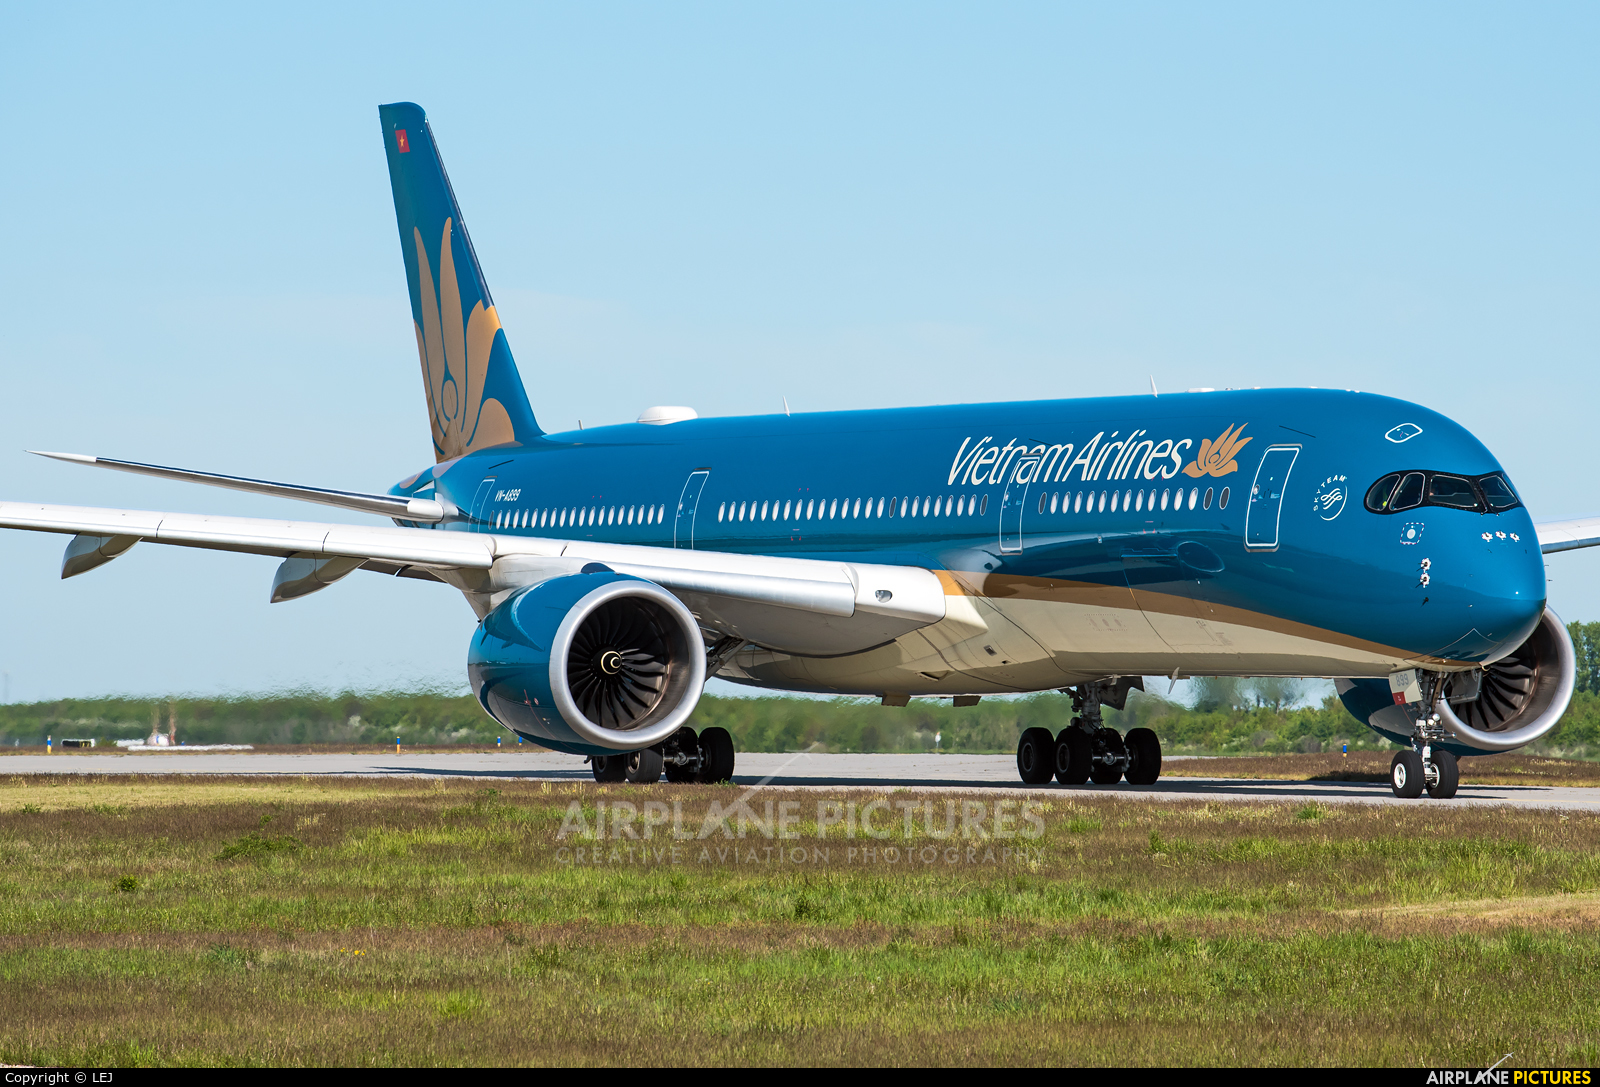 Vietnam Airlines VN-A899 aircraft at Leipzig - Halle